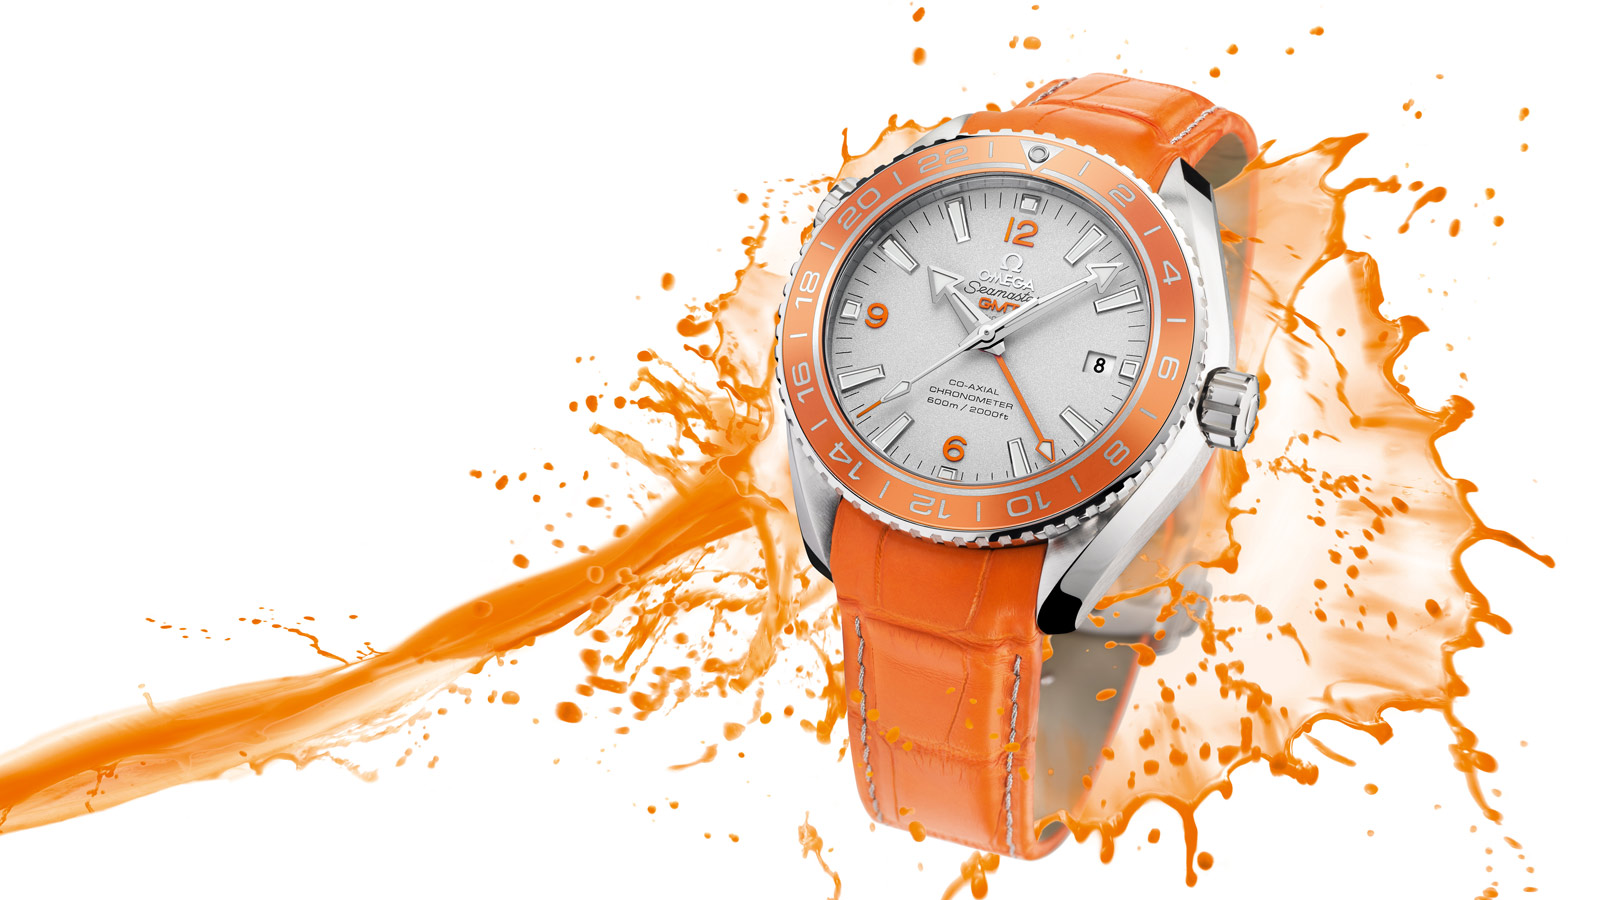 Seamaster Planet Ocean 600M Planet Ocean 600M Omega Co‑axial GMT 43.5mm - 232.93.44.22.99.001 - View 3